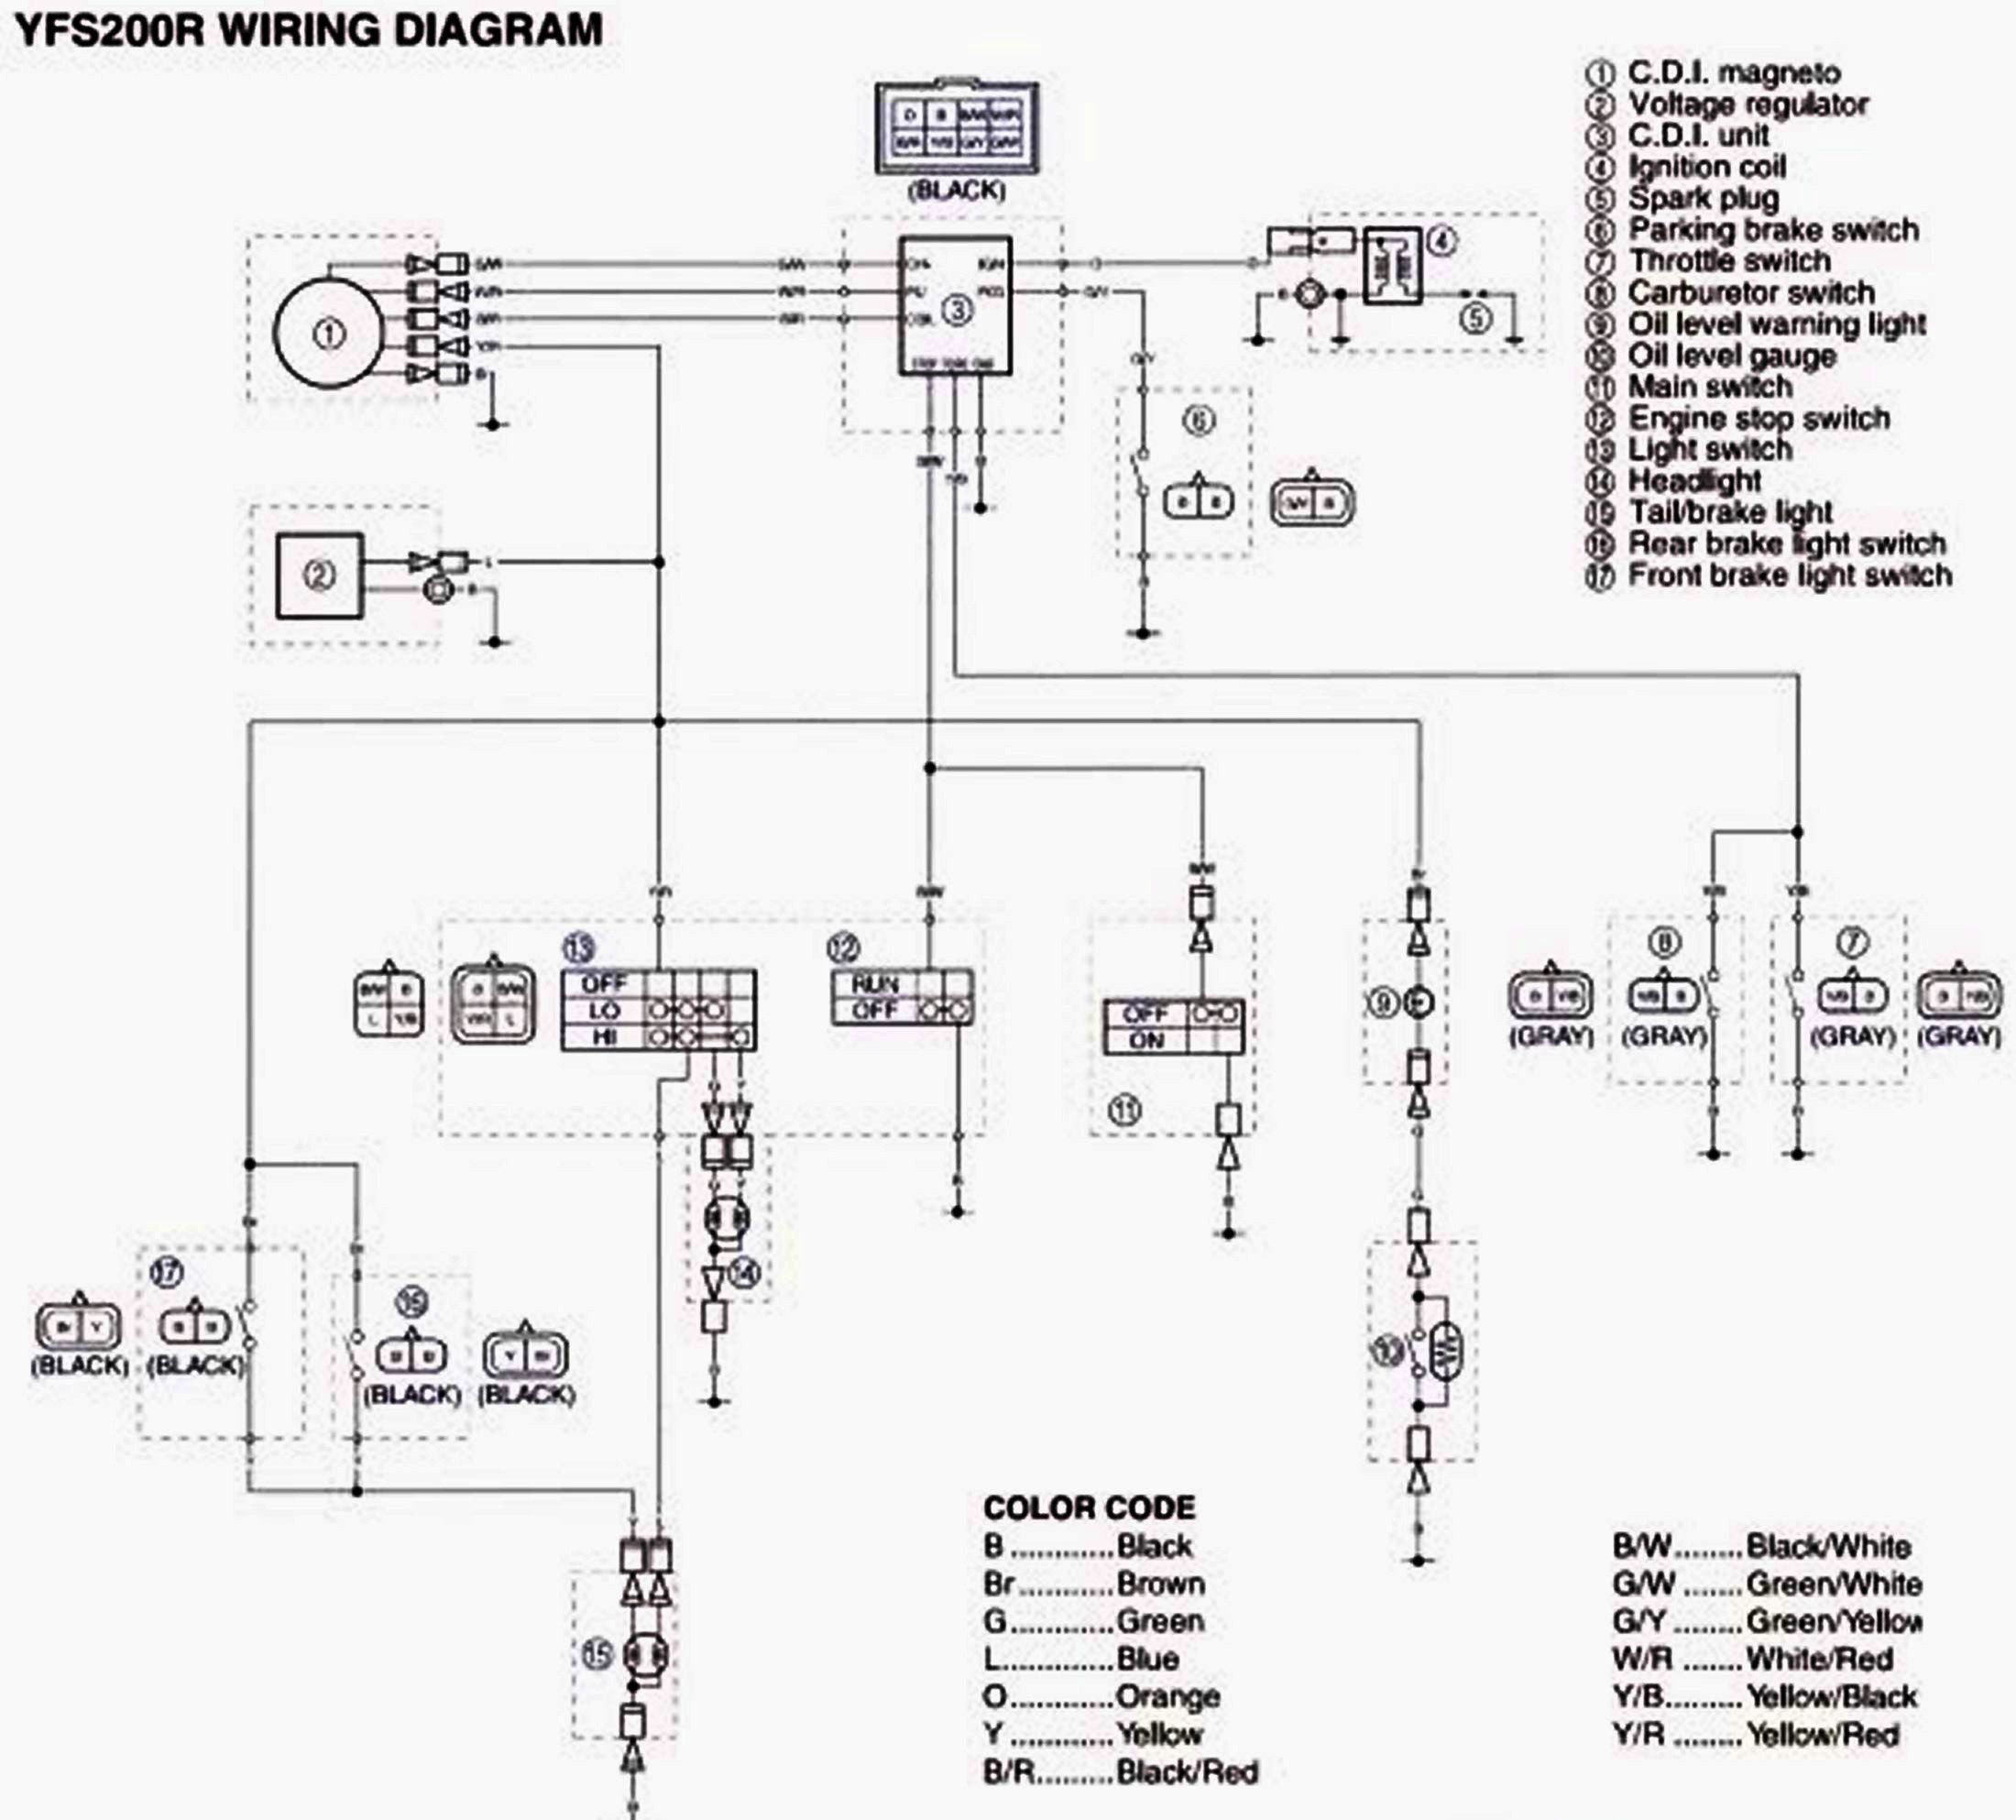 stock wiring diagrams blasterforum com yamaha wiring harness diagram at readyjetset.co